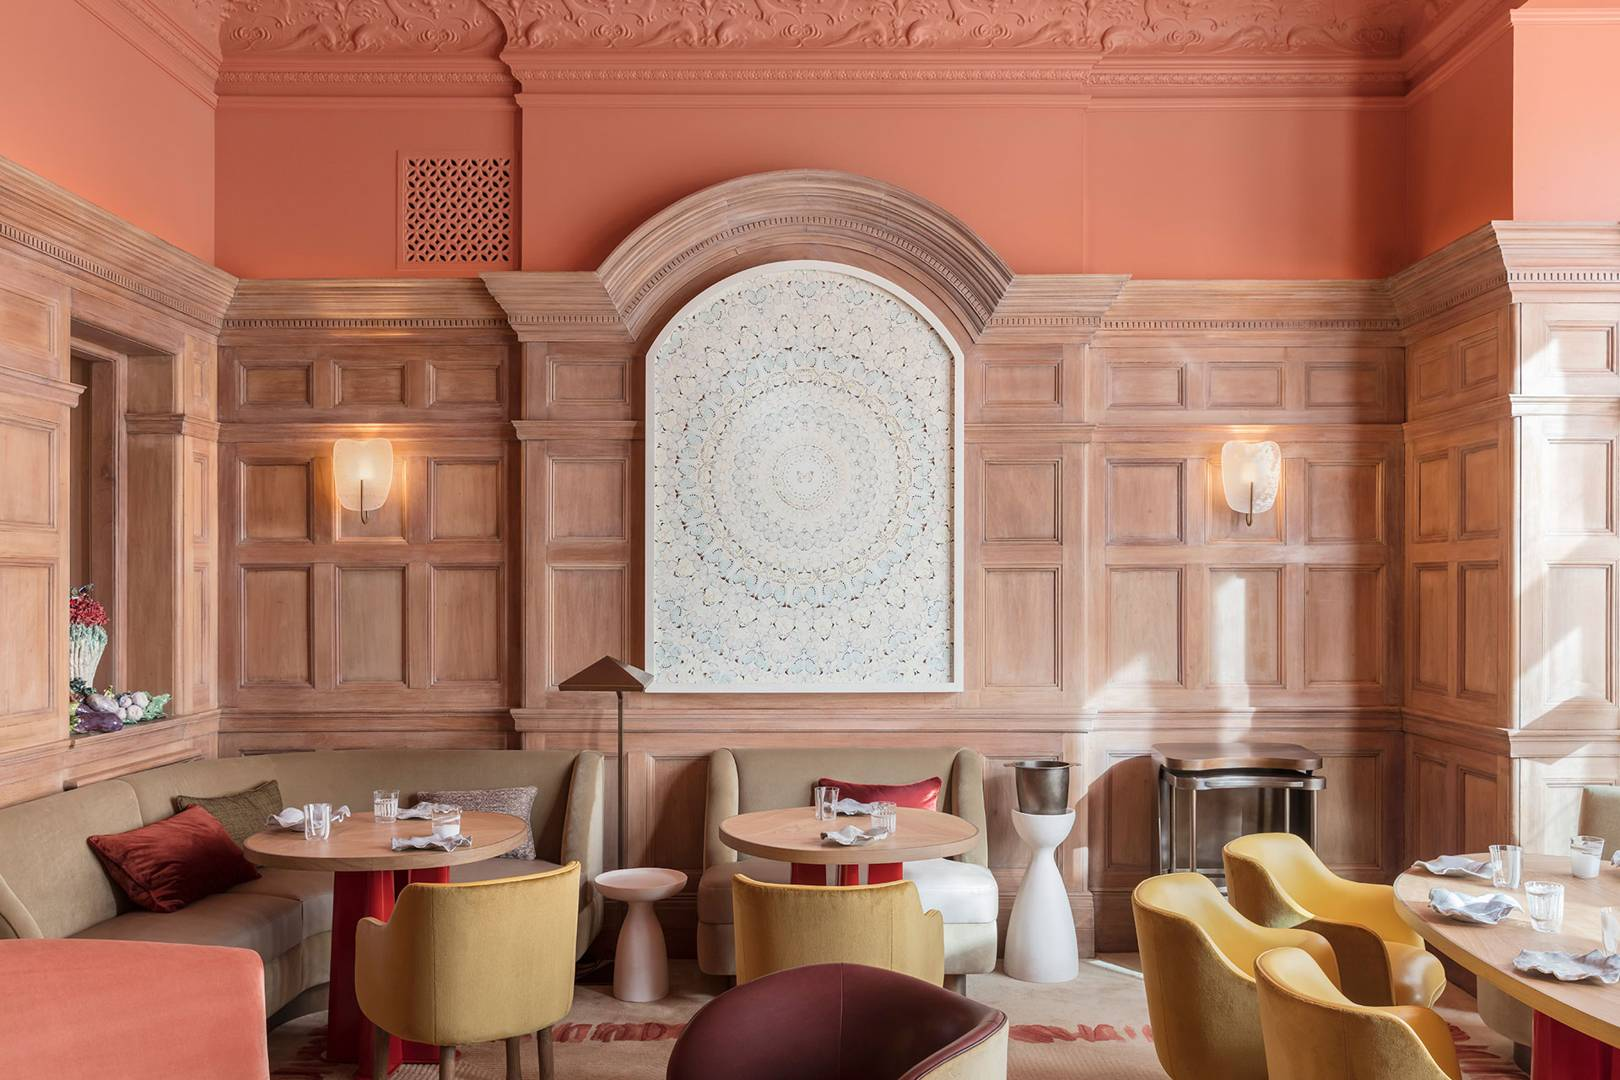 Two Michelin-starred favourite Hélène Darroze at the Connaught has been revamped and reopened